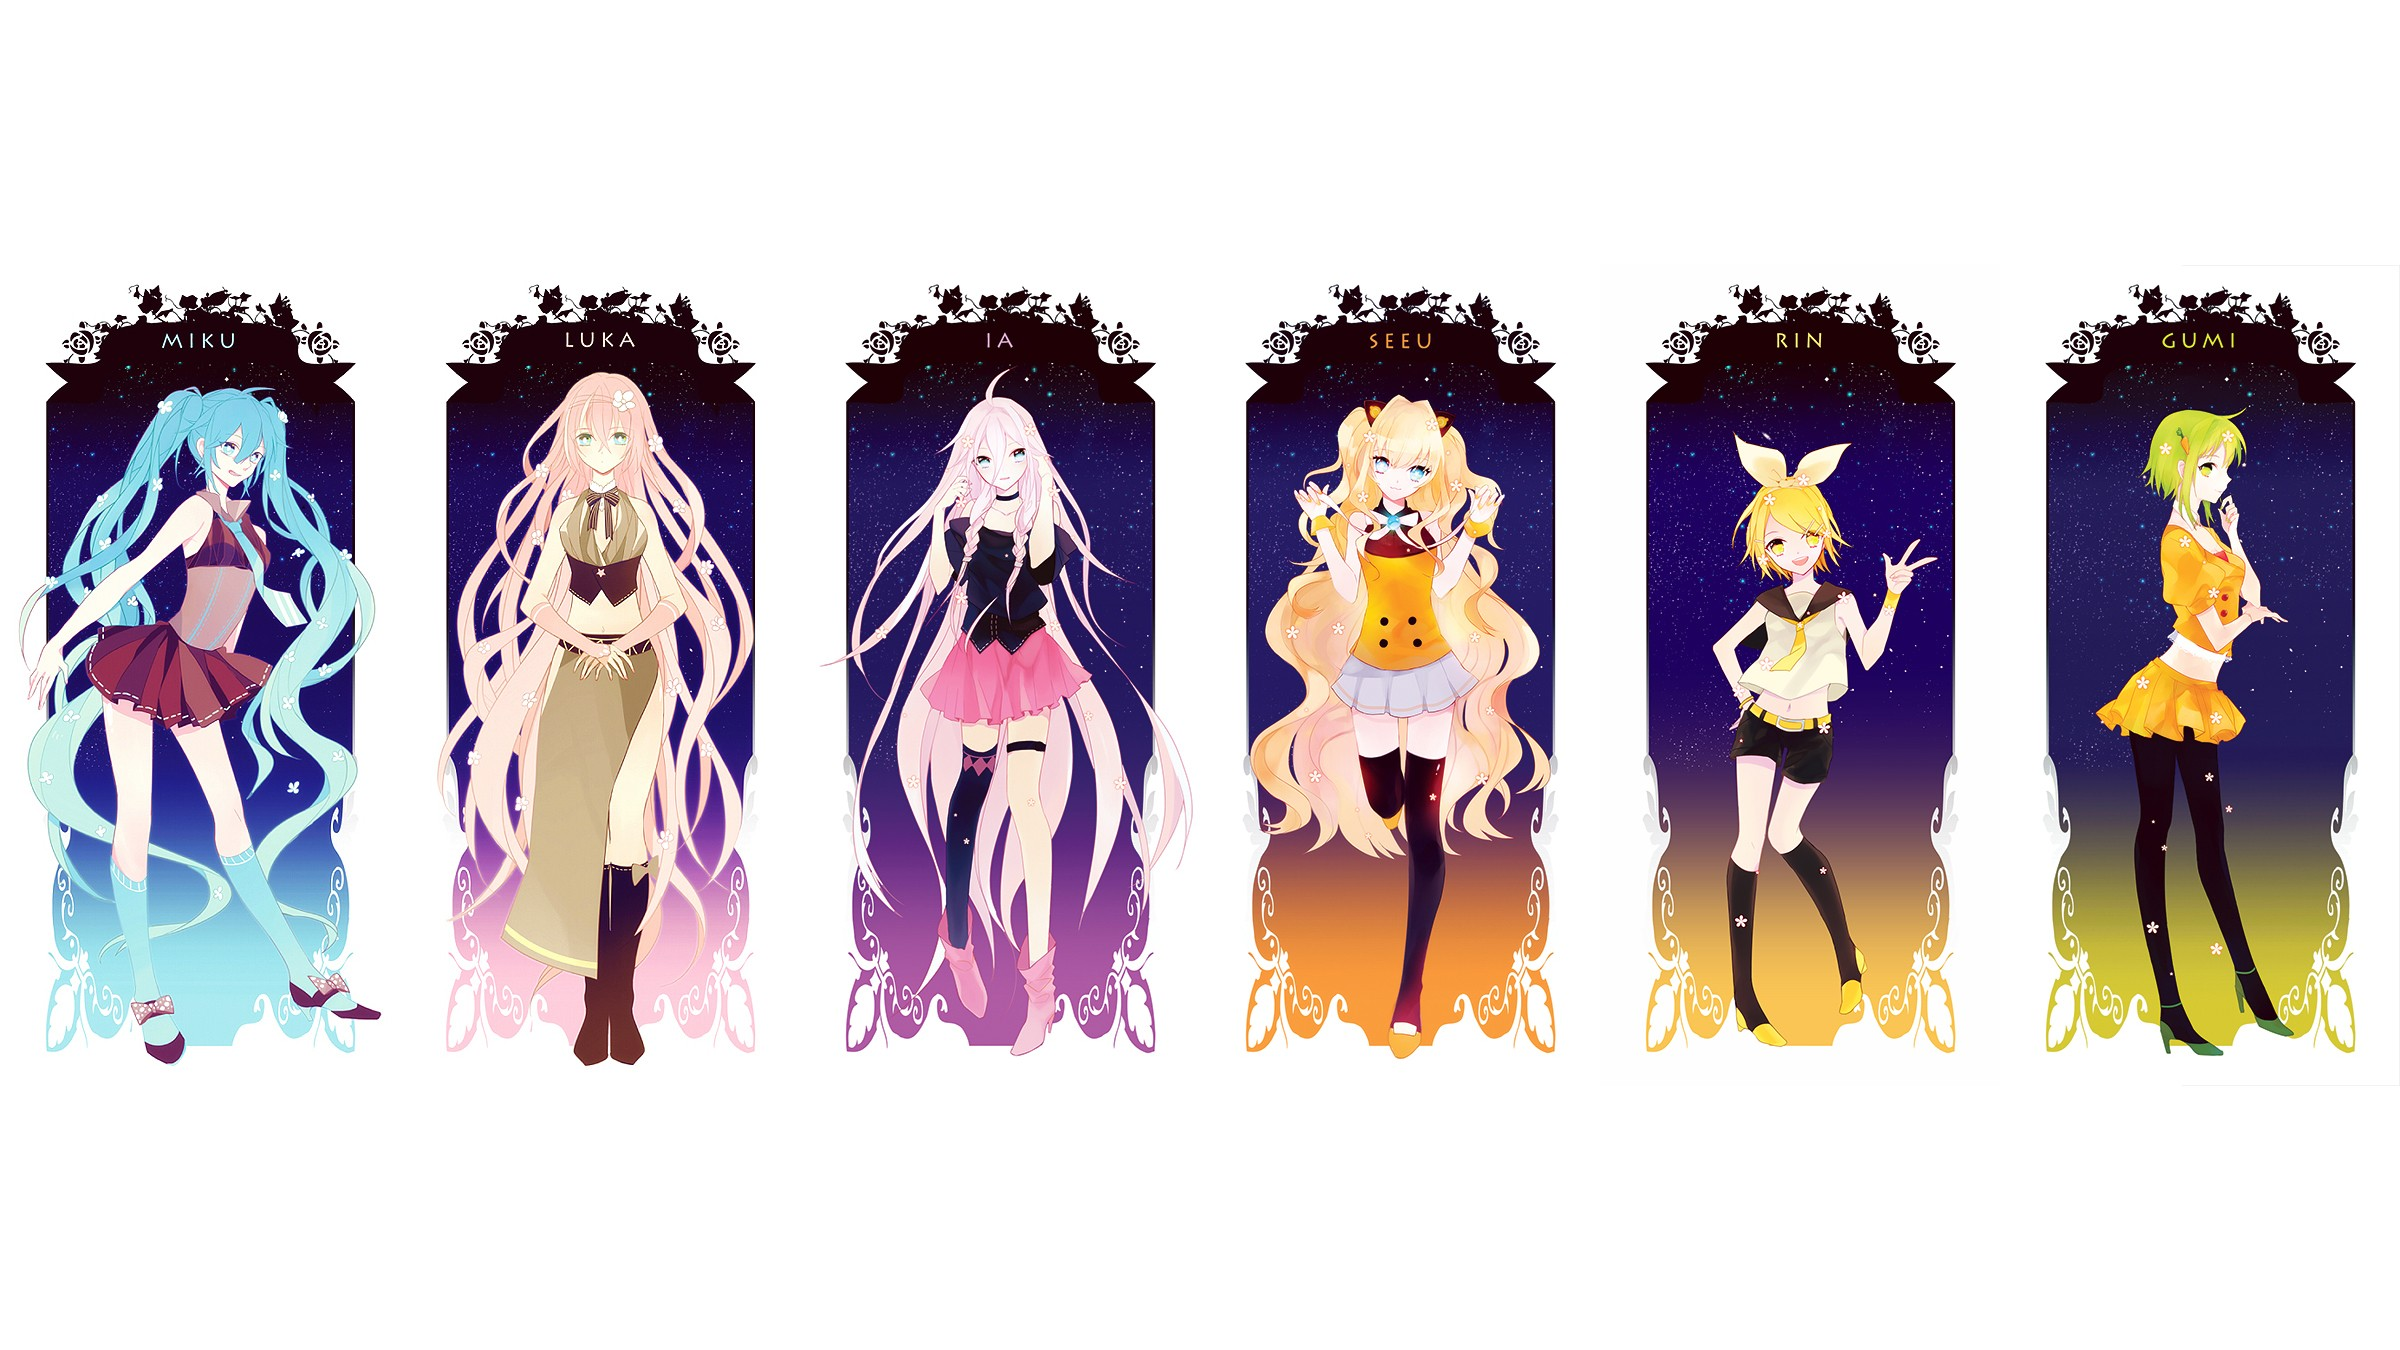 vocaloid characters wallpaper 2400x1350